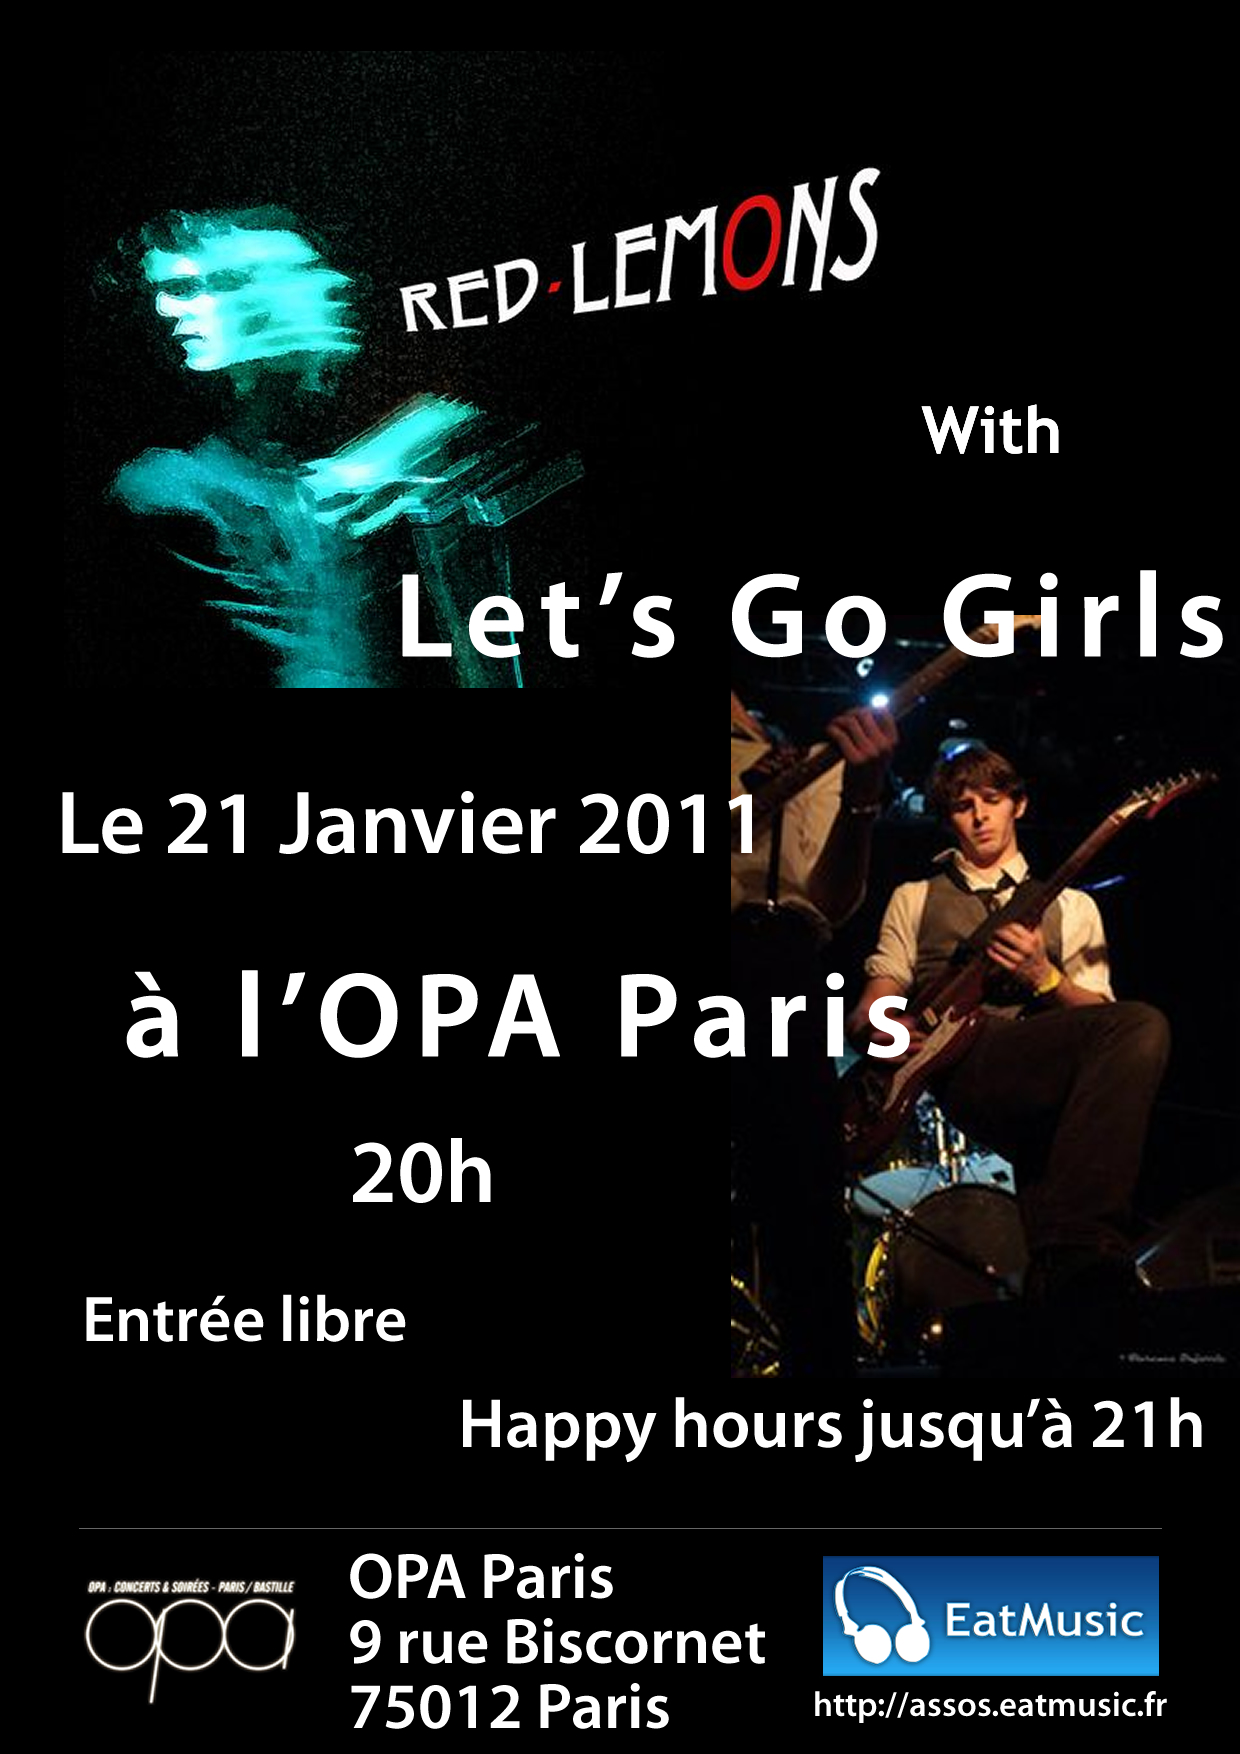 Concert des Red-Lemons, Let's Go Girls et The Offenders à l'OPA